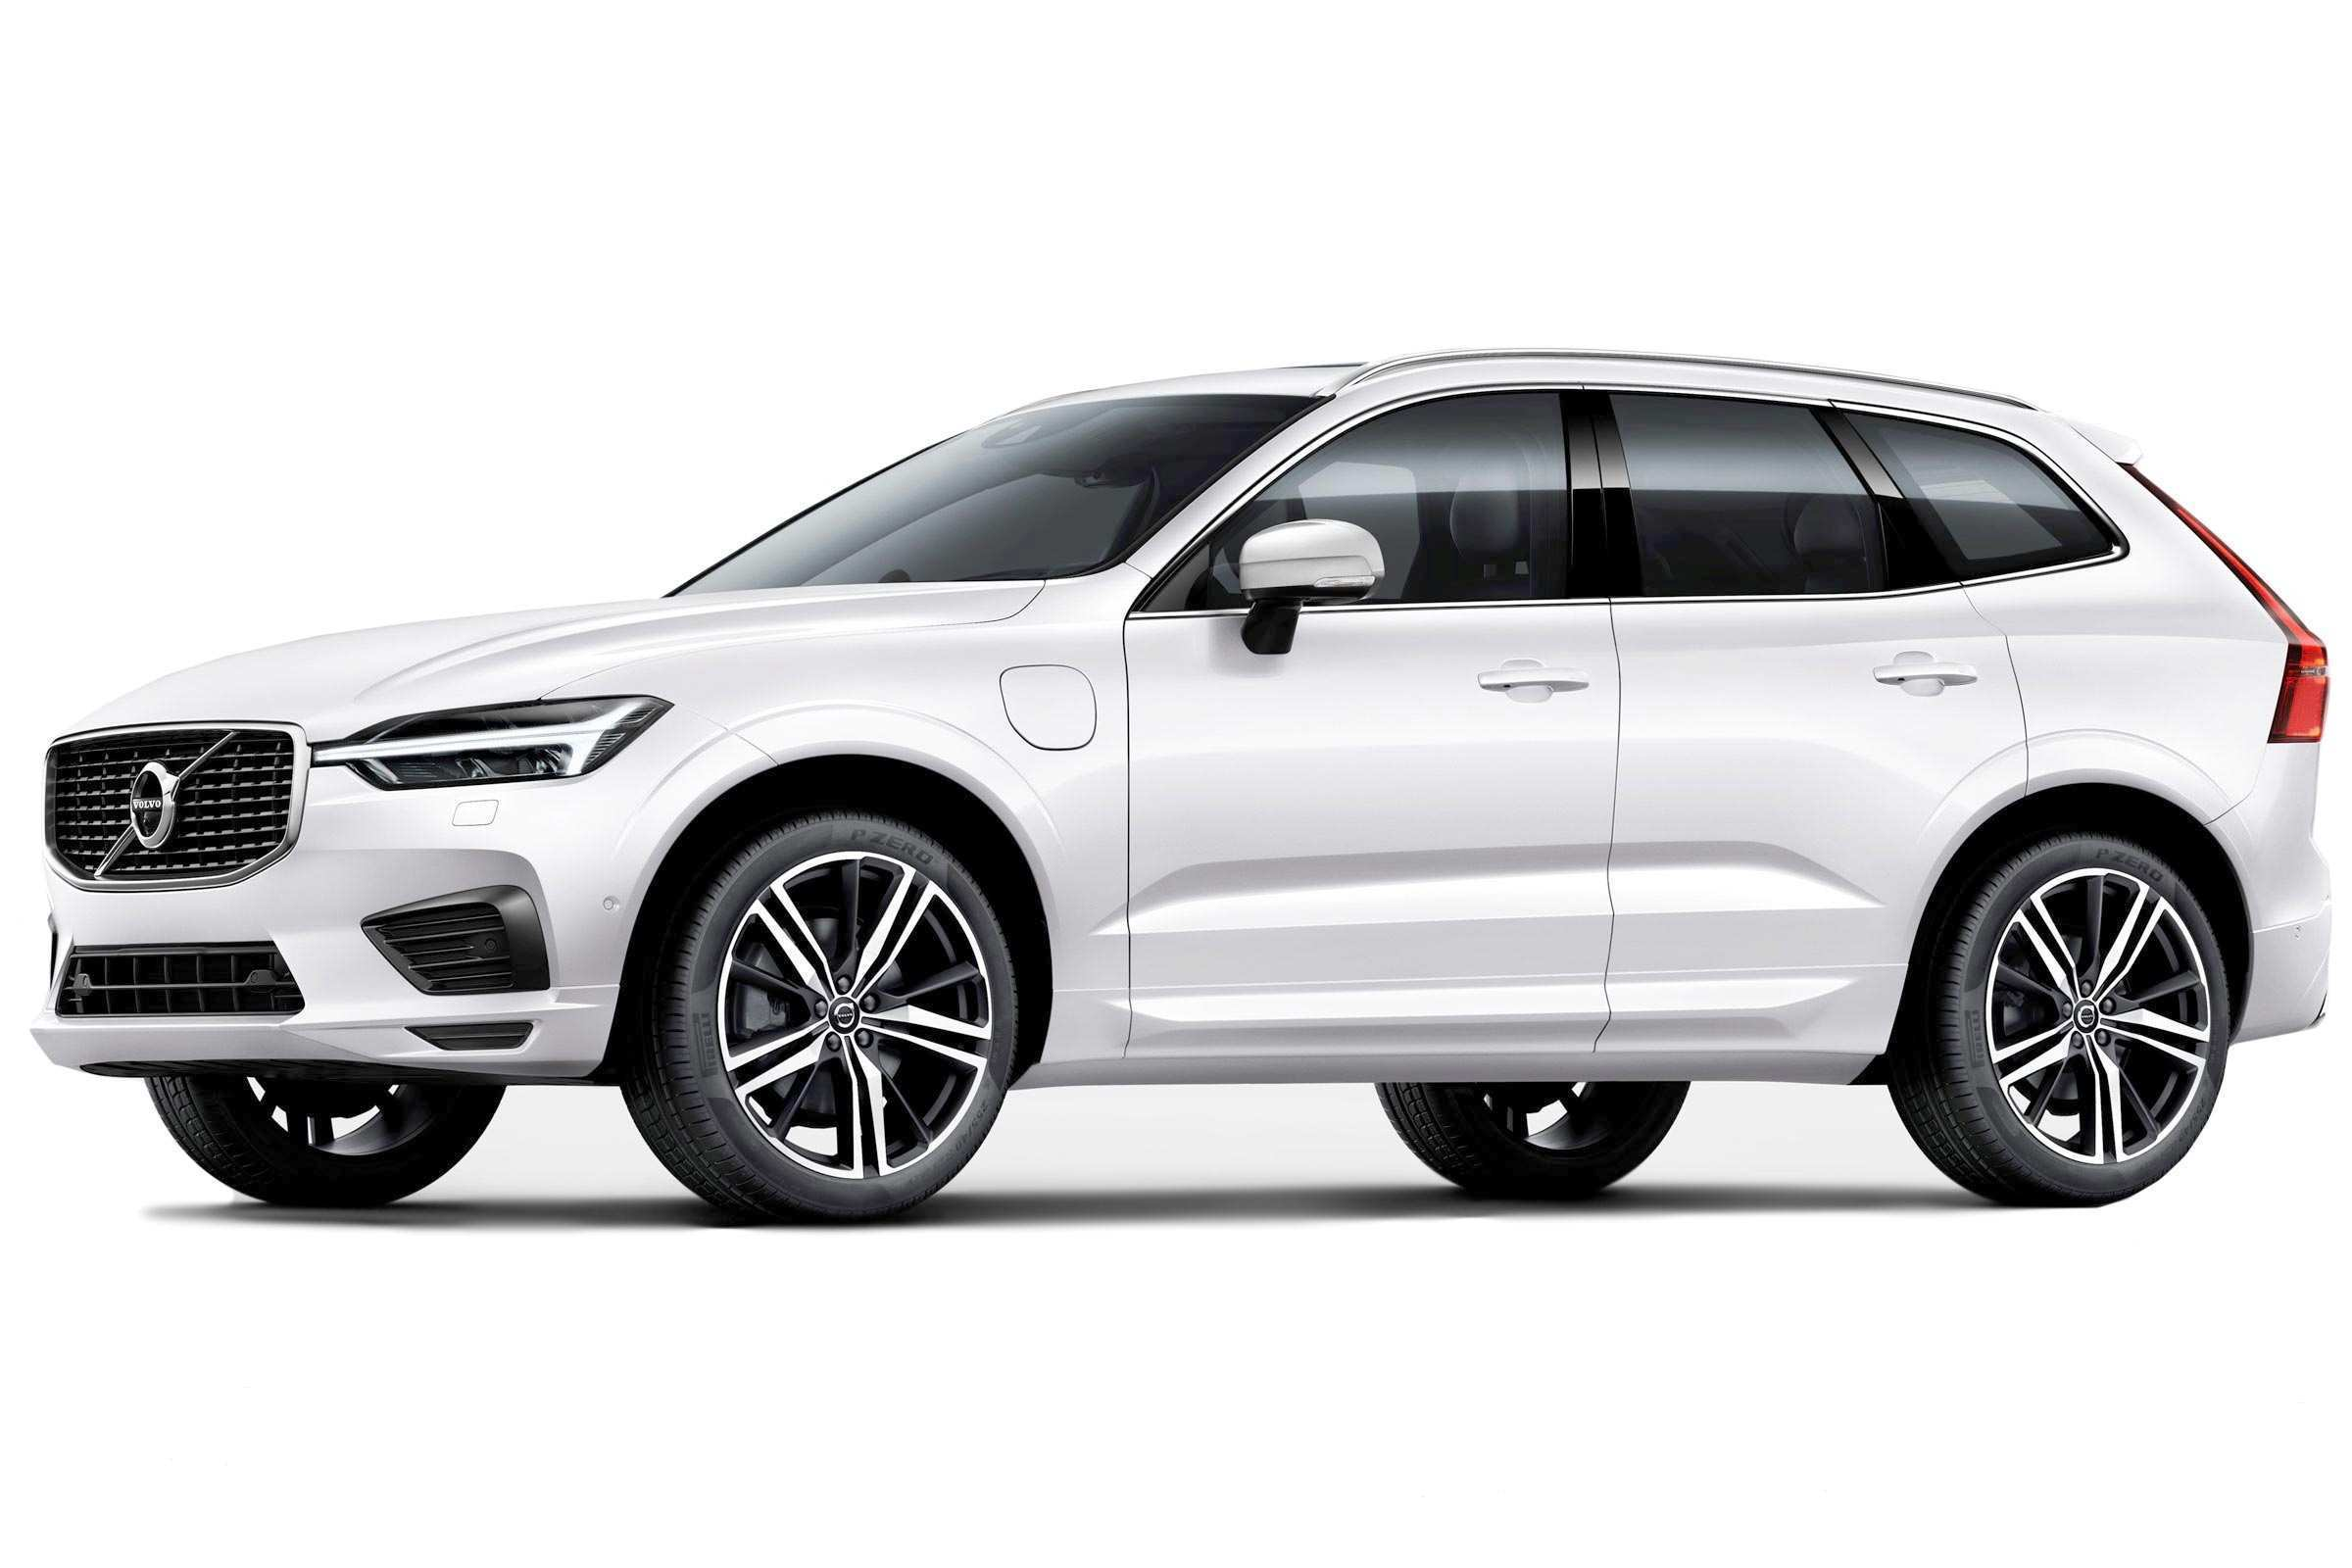 60 Concept of New Volvo Xc60 2019 Manual Specs Exterior and Interior with New Volvo Xc60 2019 Manual Specs